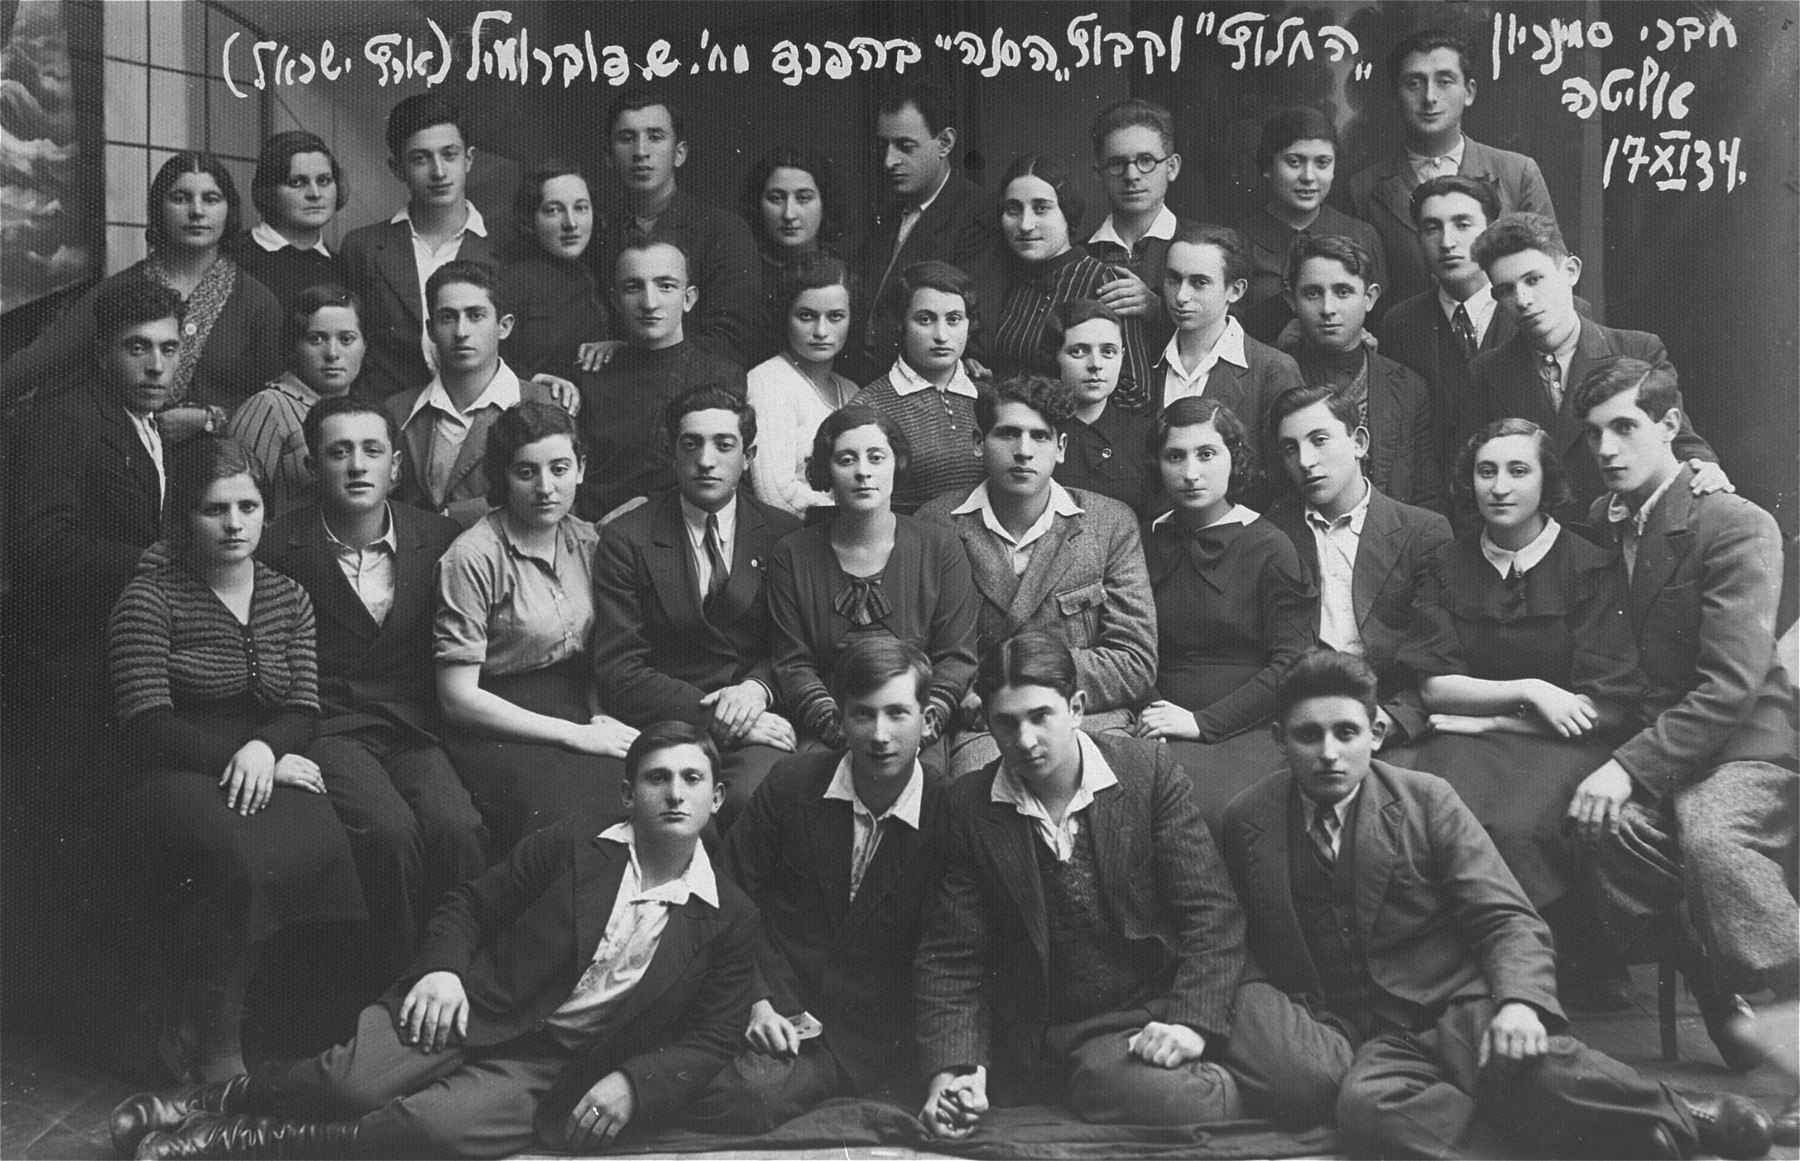 Group portrait of members of the Hehalutz seminar and the kibbutz hachshara, Hasneh, taken on the occasion of the departure of one of their members for Palestine.  Eliezer Kaplan is seated in the second row, fourth from the left.